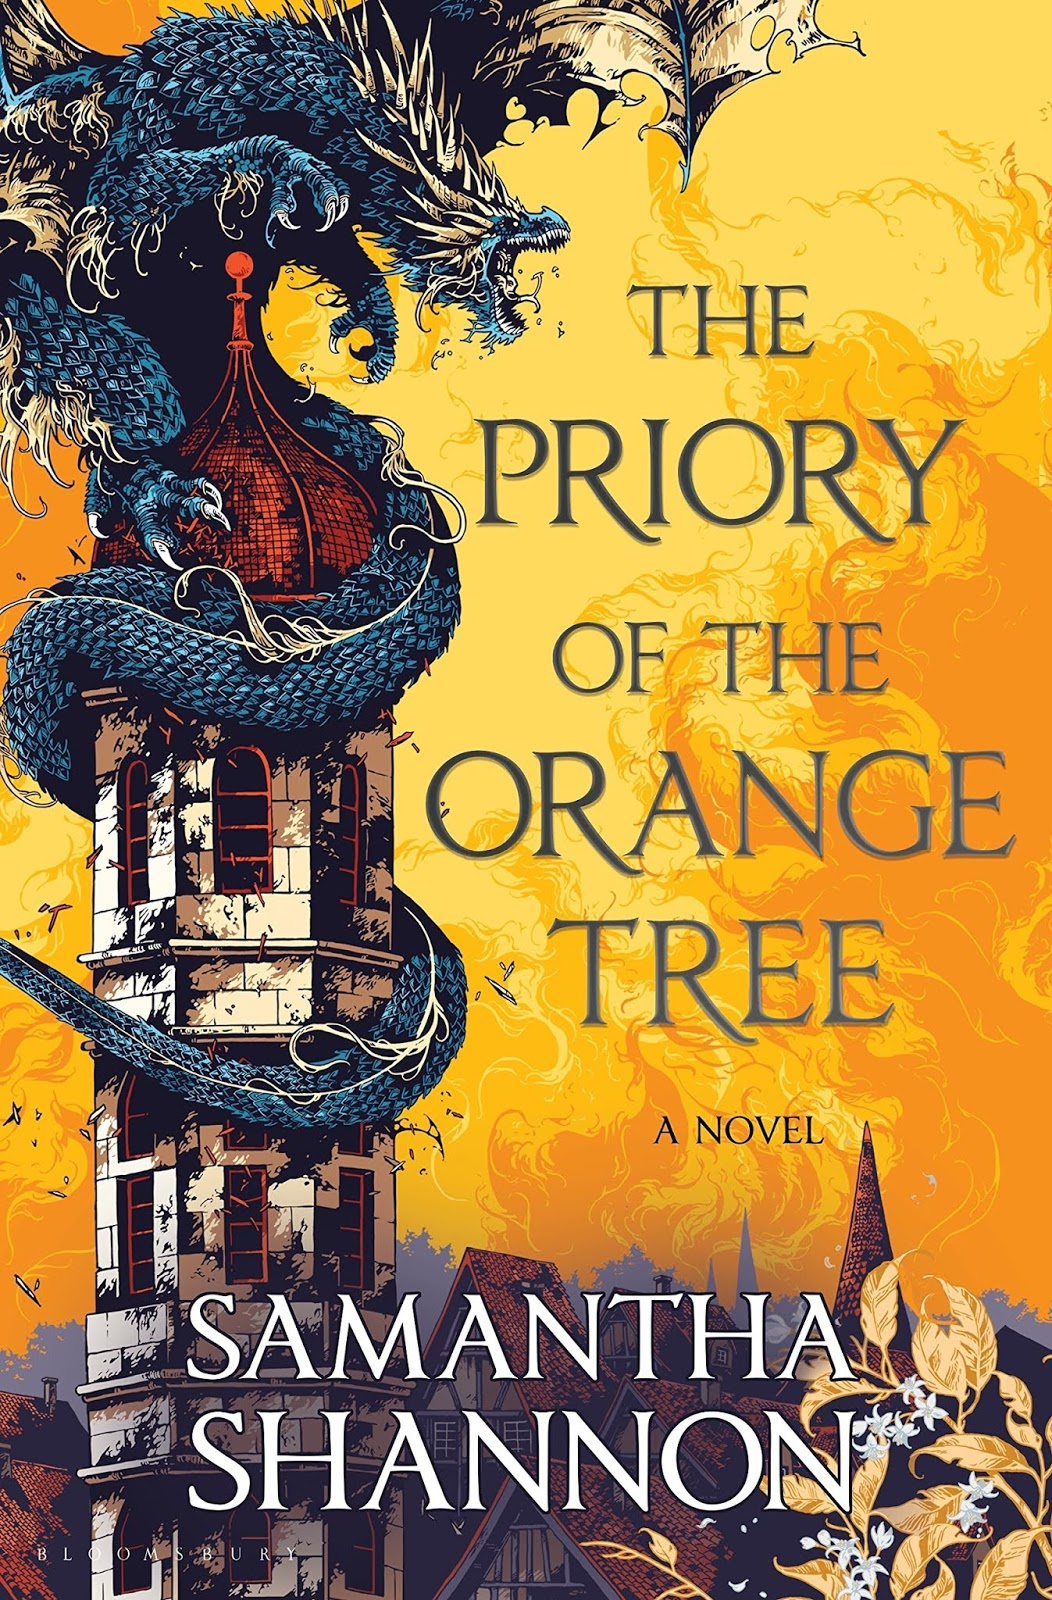 The Priory Of The Orange Tree il priorato dell'albero delle arance